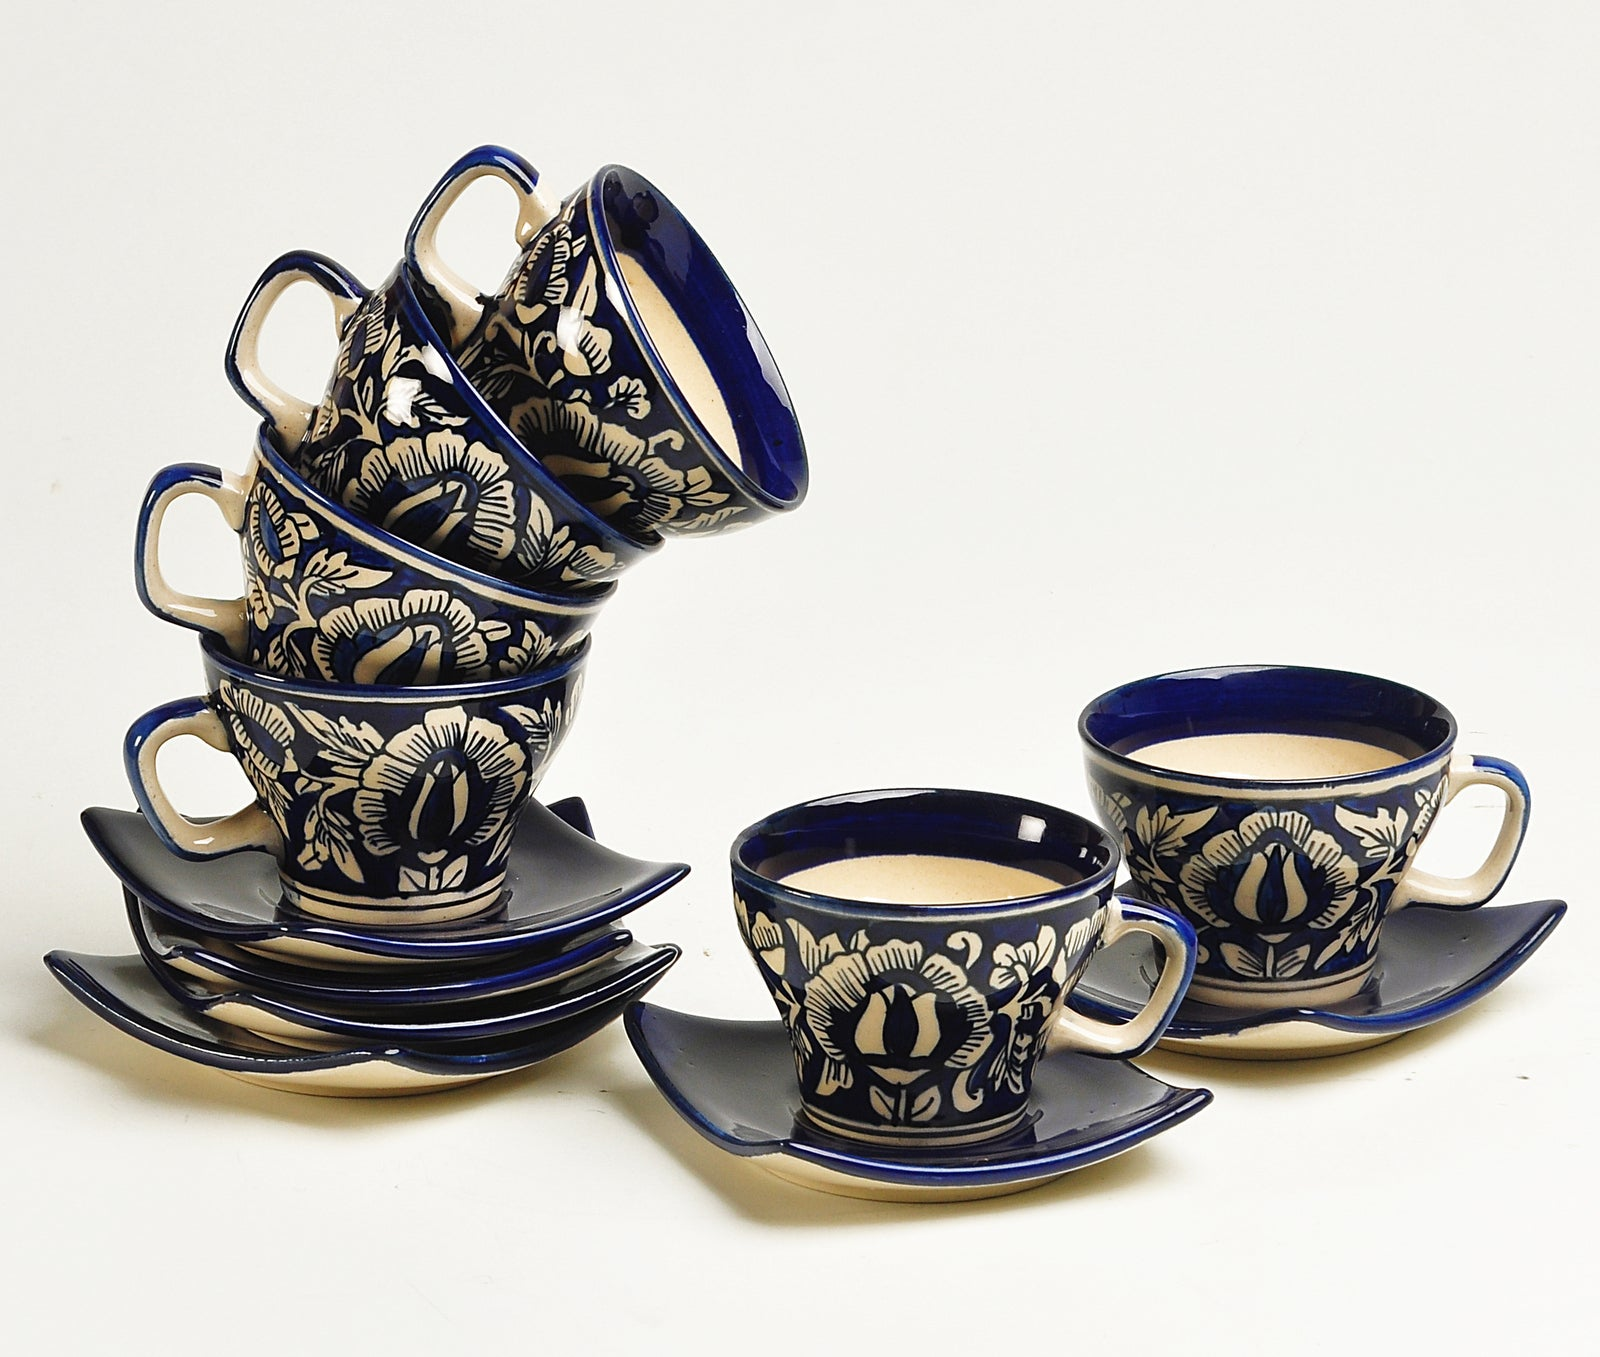 mughal-noveau-cup-and-saucer-6-cups-and-6-saucers-dec5446